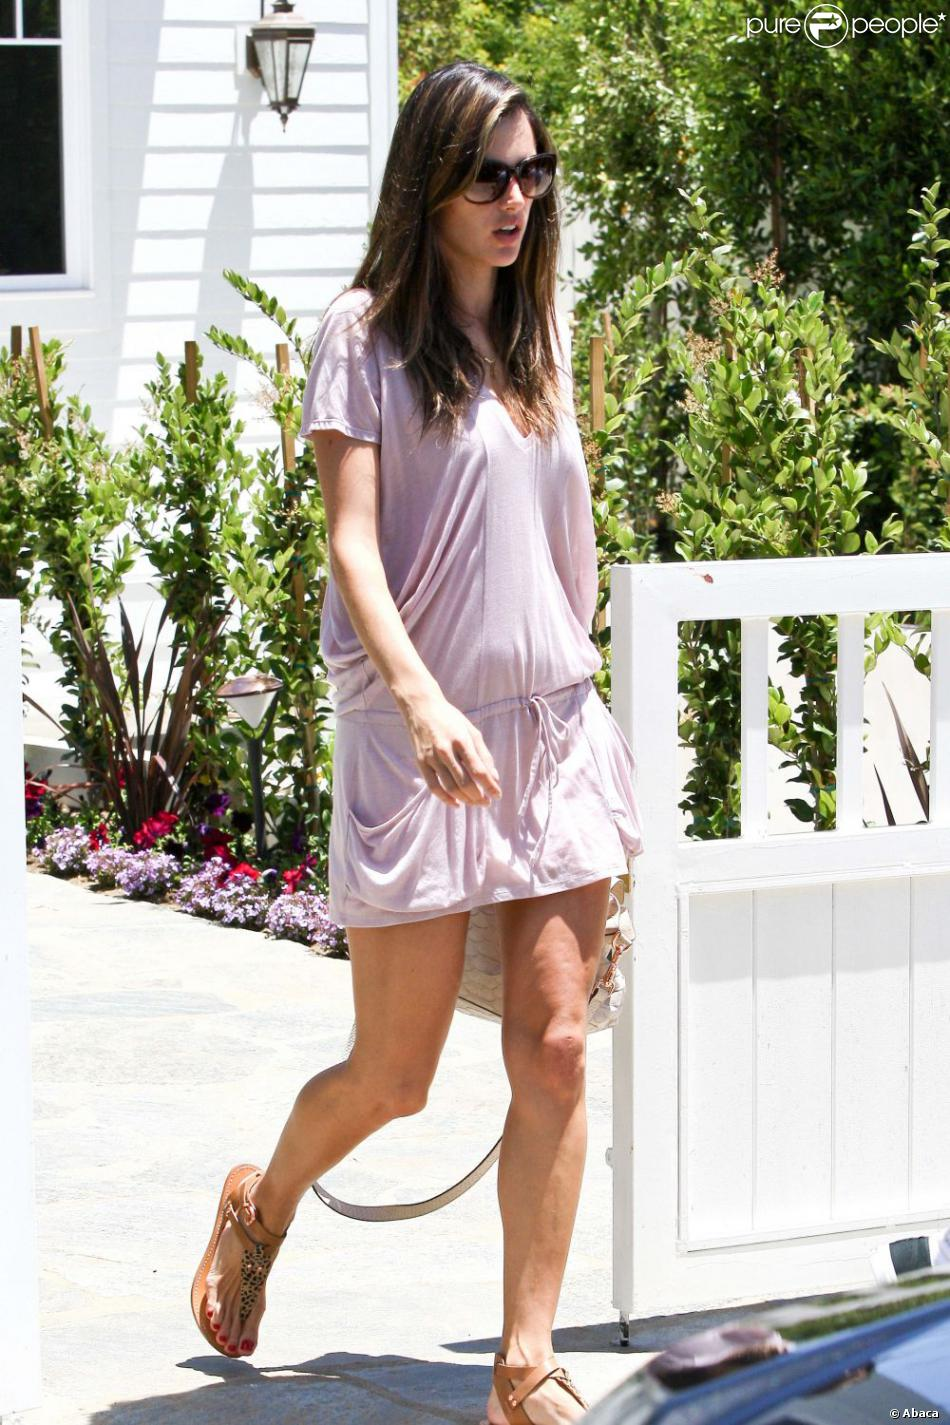 alessandra ambrosio visite une maison dans le quartier de brentwood avec son fianc jaime mazur. Black Bedroom Furniture Sets. Home Design Ideas